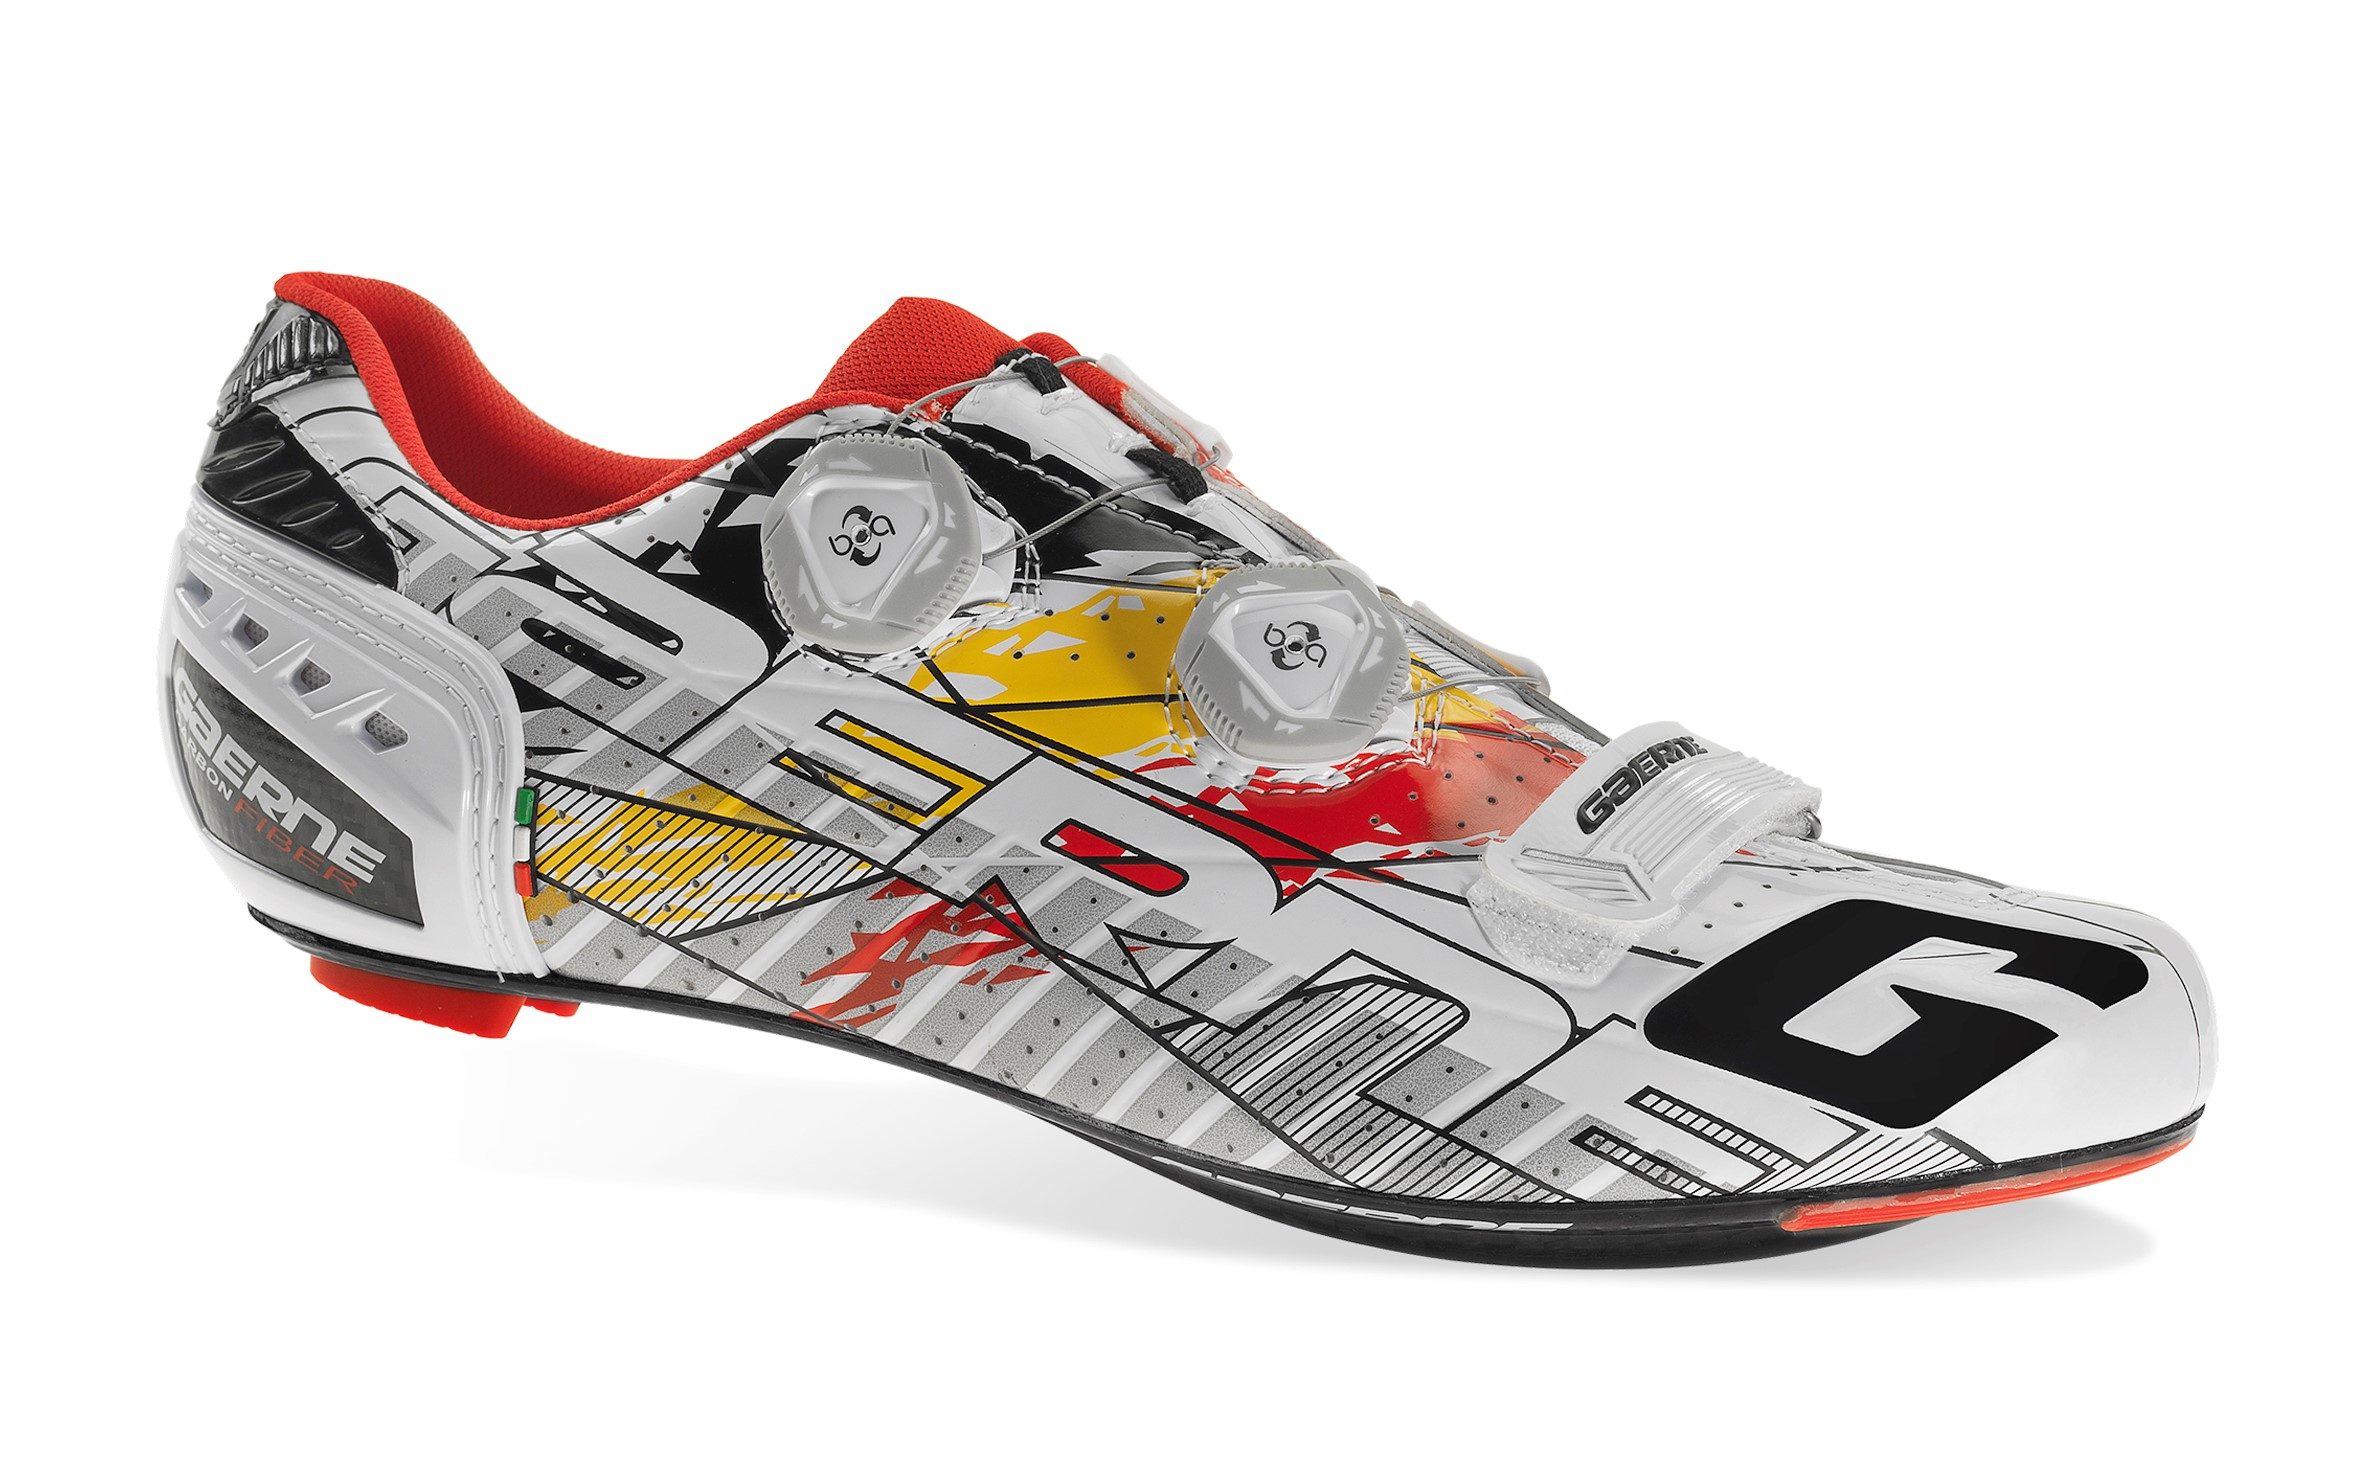 3280-030 CARBON G.STILO RED/YELLOW/WHITE LIMITED EDITION